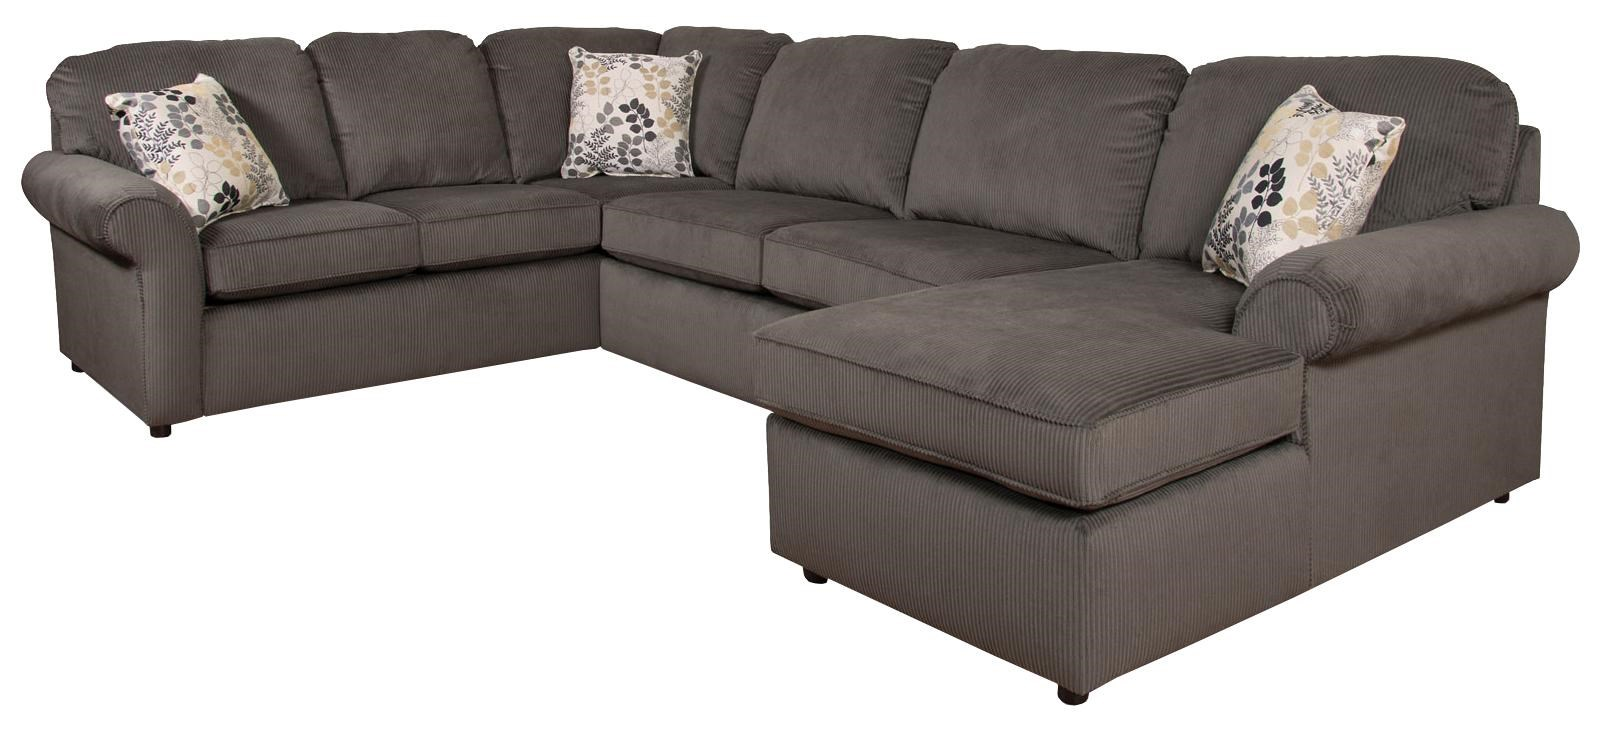 England Malibu 5-6 Seat (right side) Chaise Sectional Sofa  sc 1 st  A1 Furniture & England Malibu 5-6 Seat (right side) Chaise Sectional Sofa - A1 ... islam-shia.org